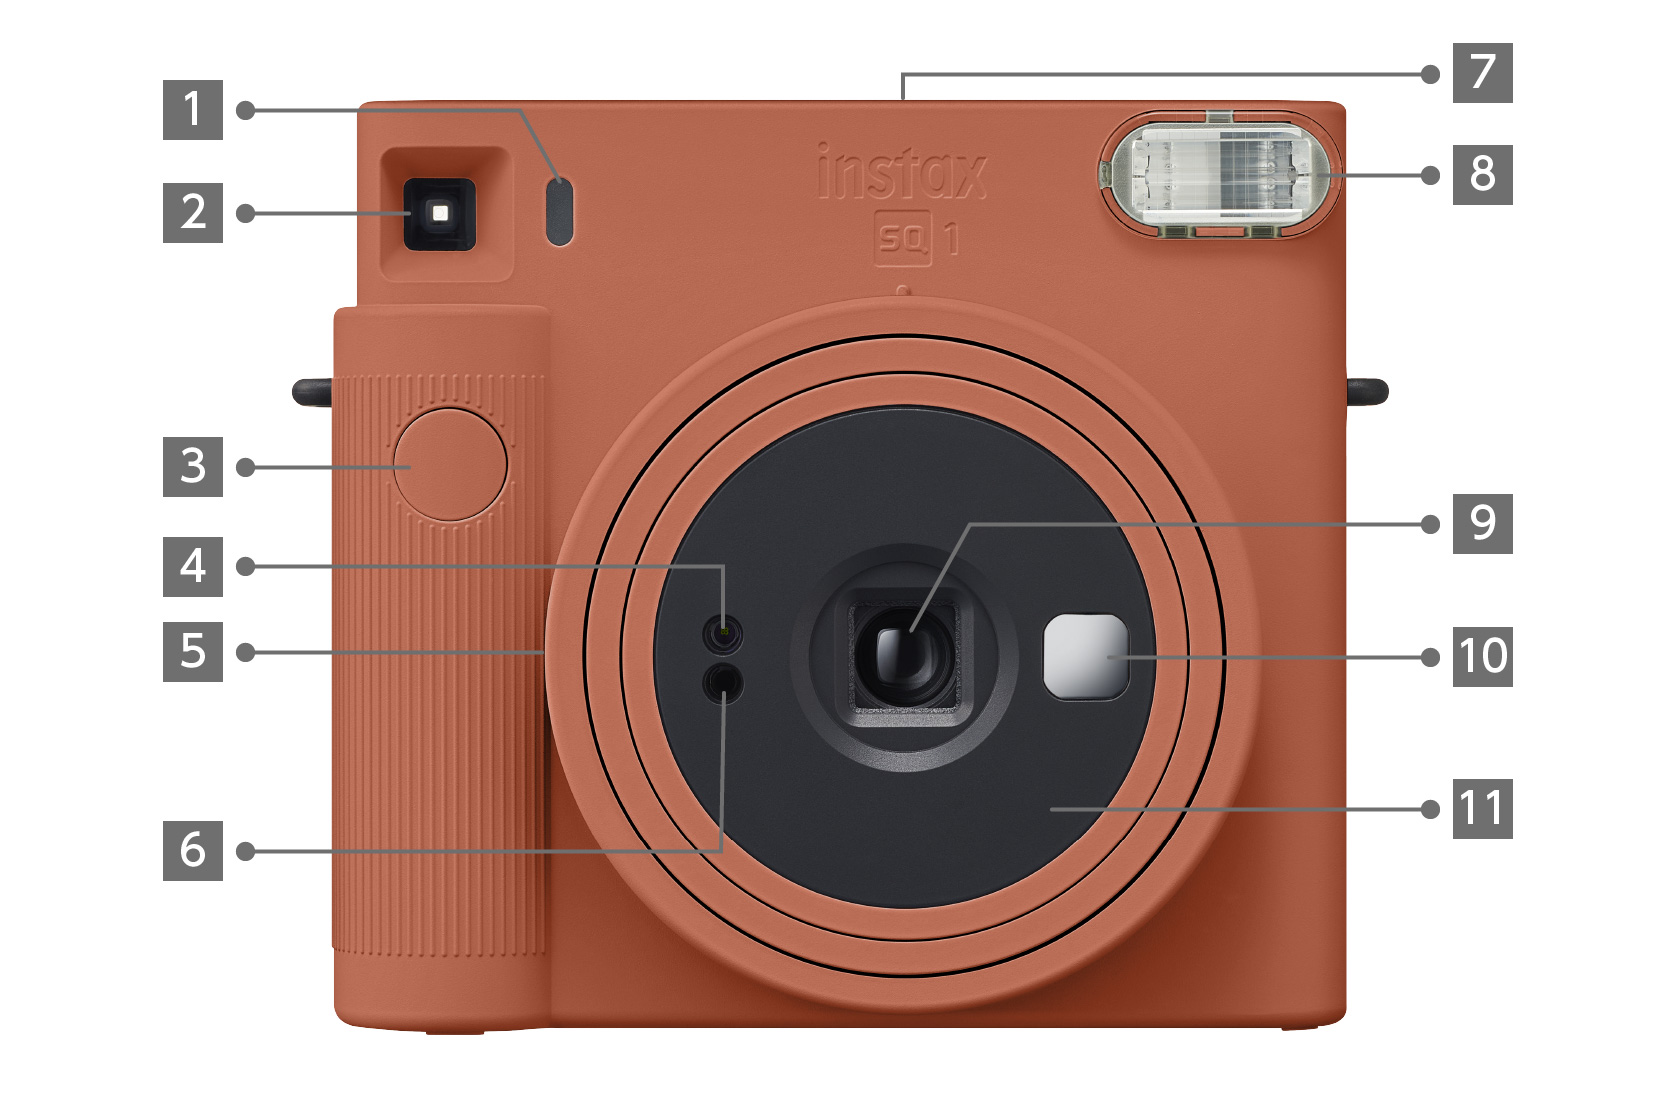 INSTAX SQUARE 1 SPECIFICATIONS